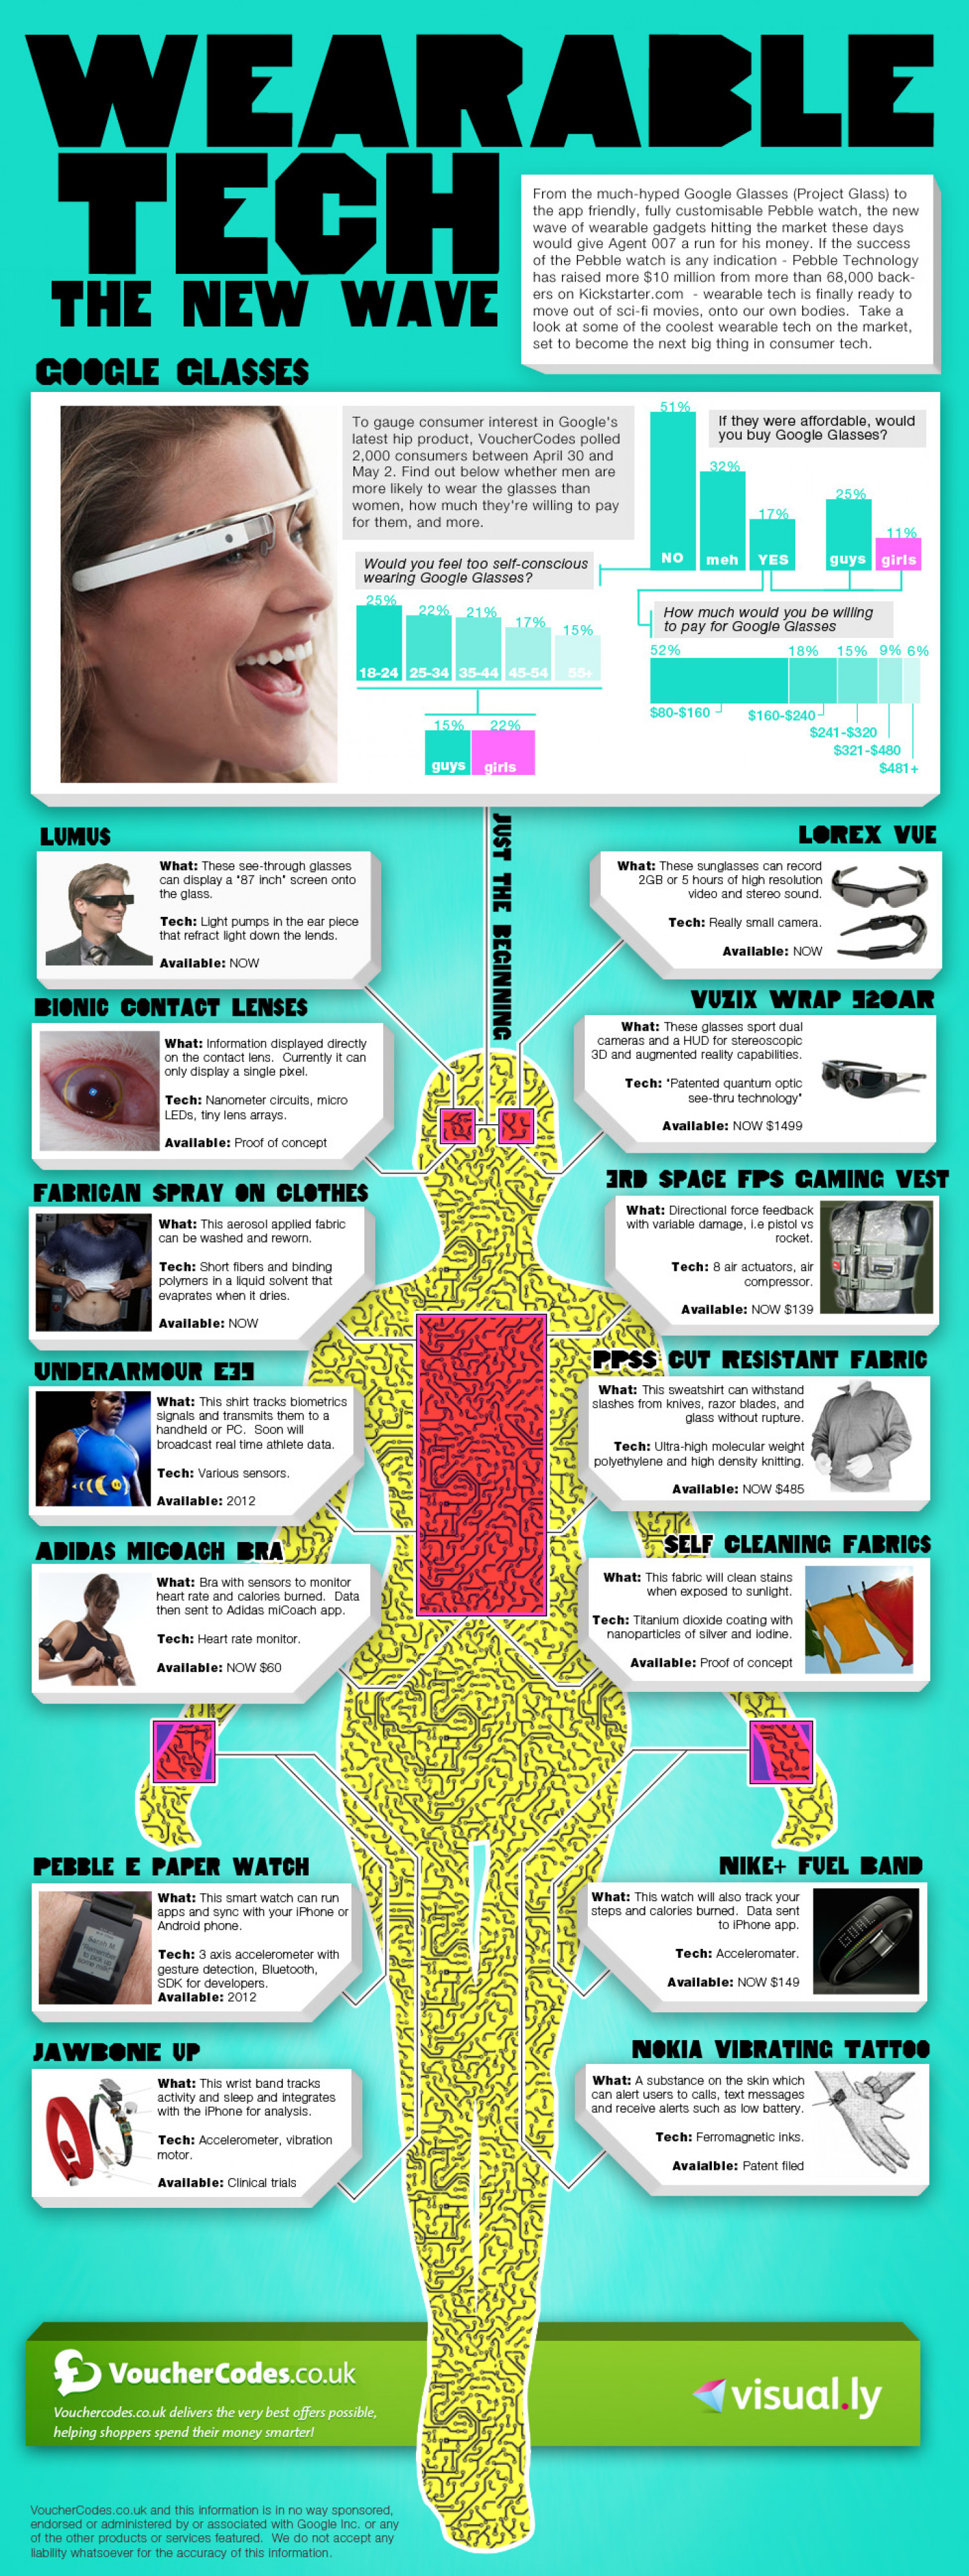 Wearable Tech: The New Wave Infographic